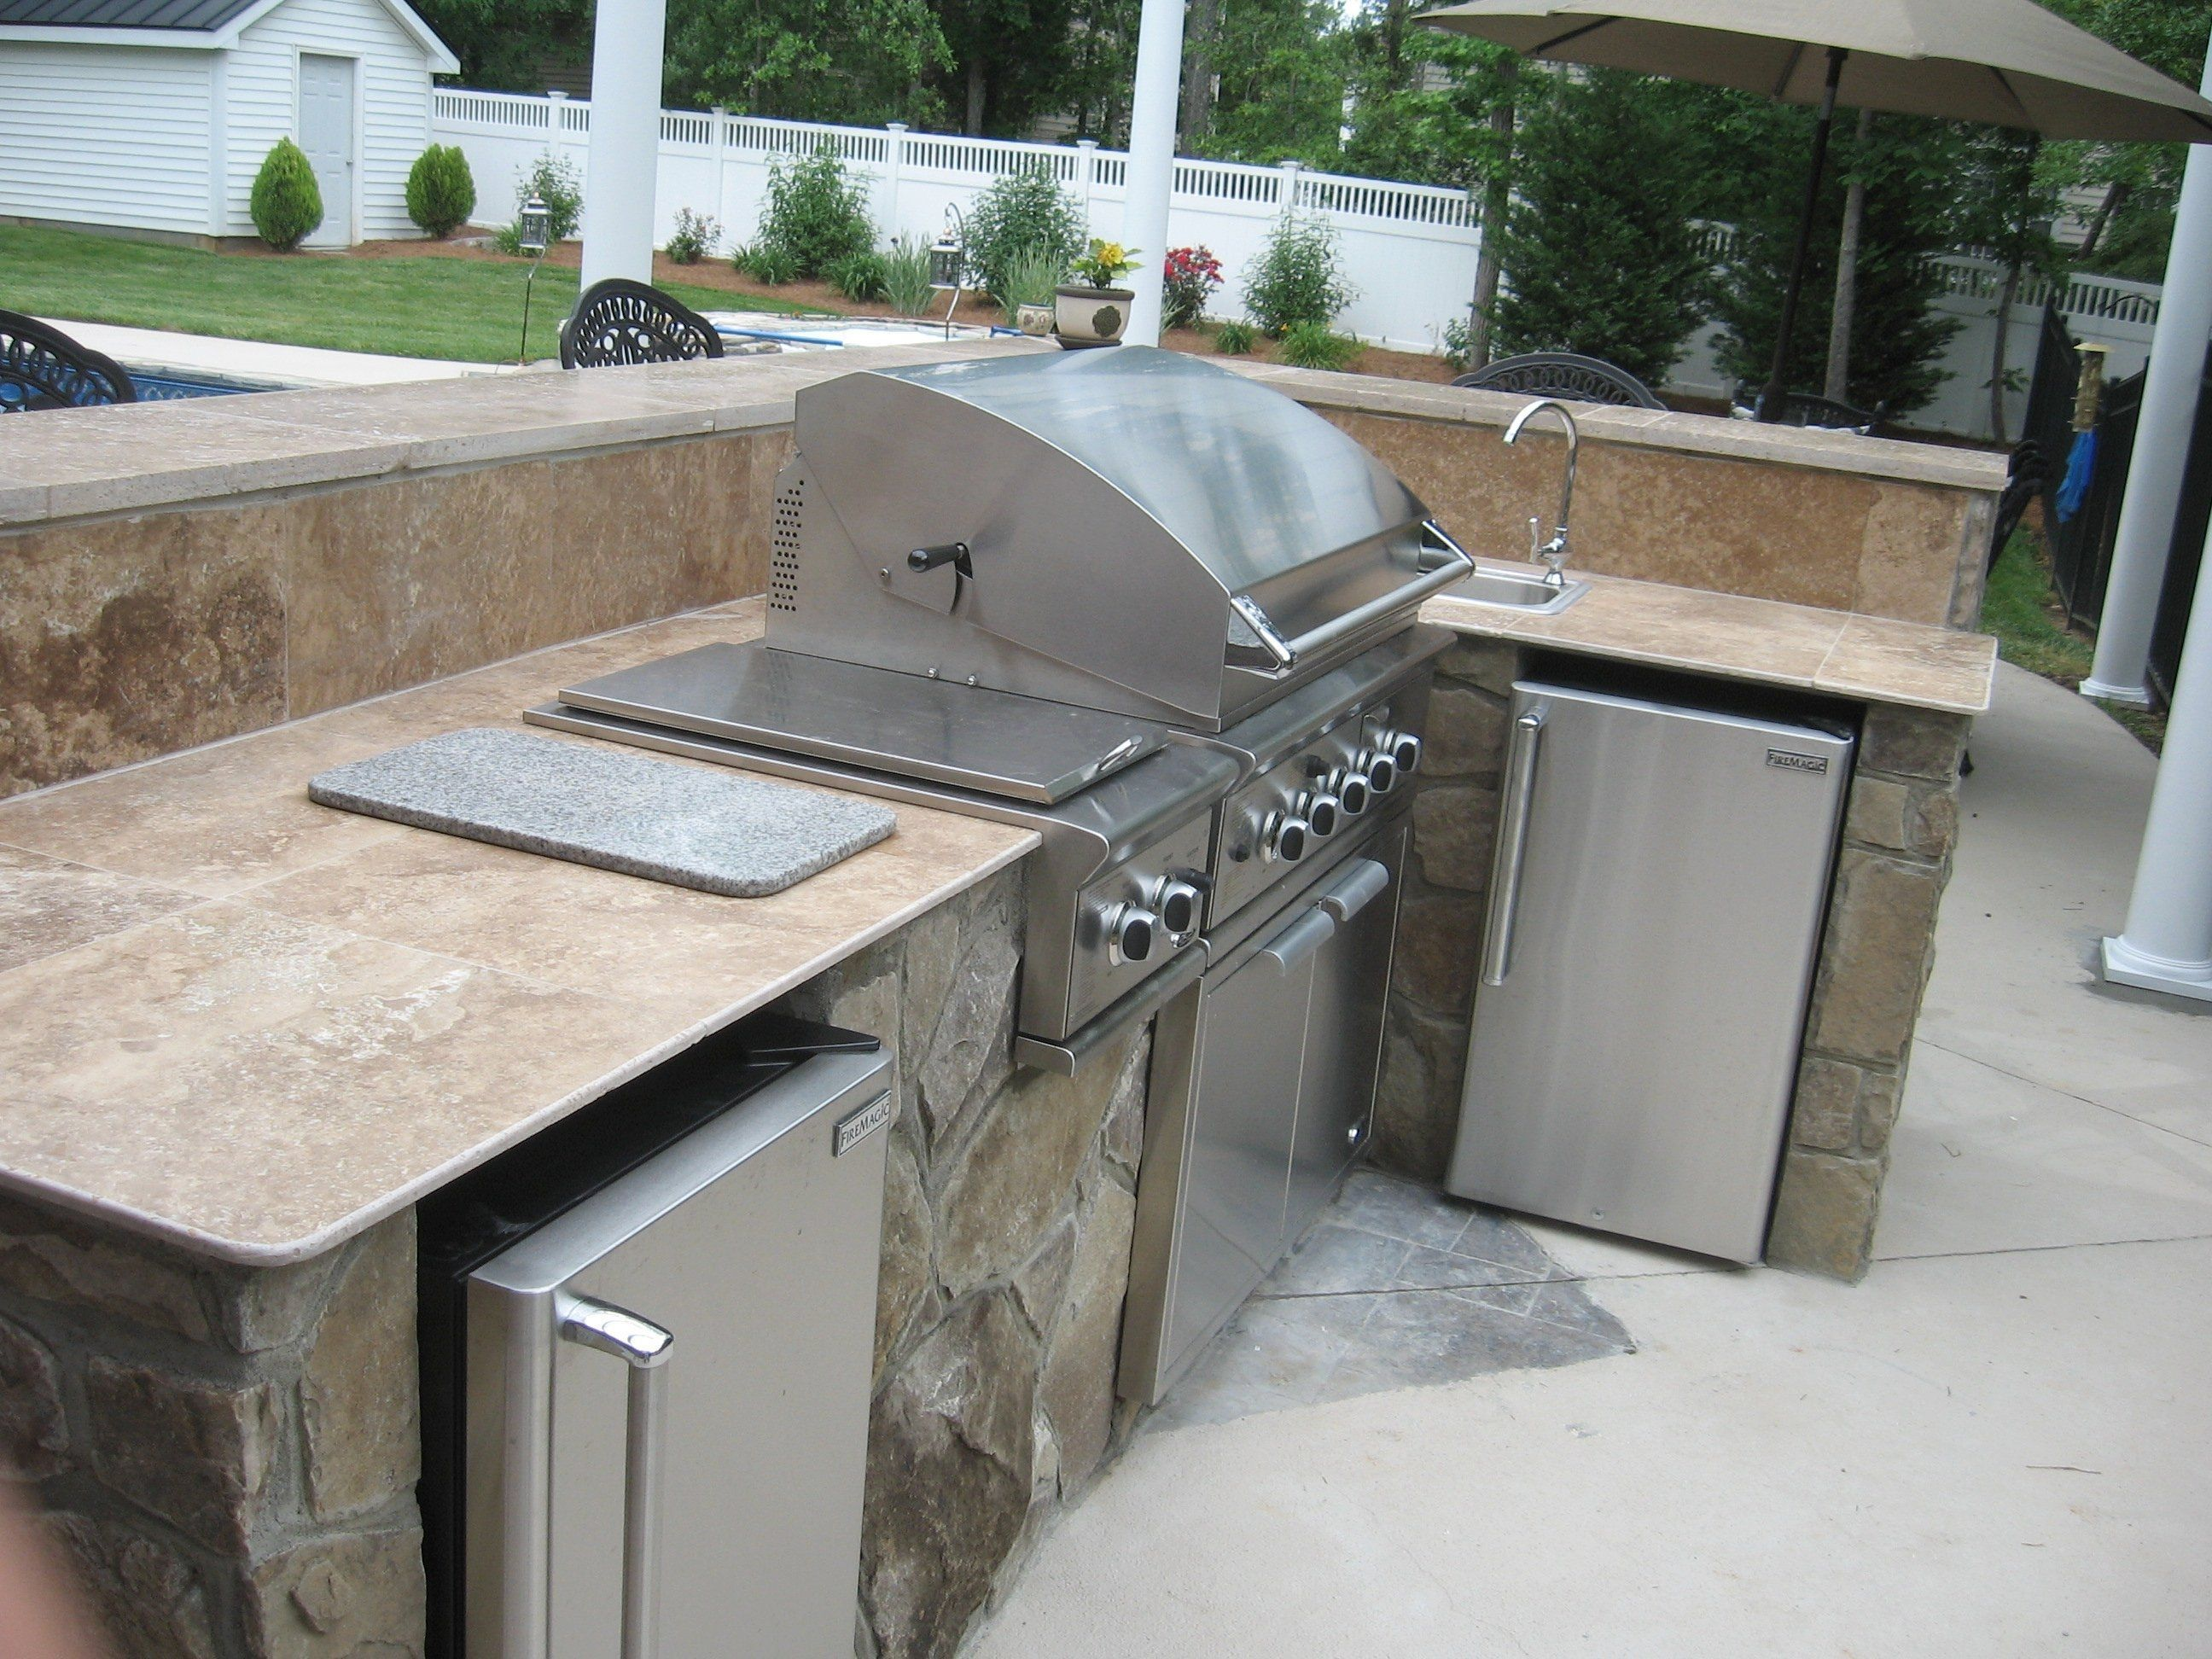 Tile Countertops For Outdoor Kitchens